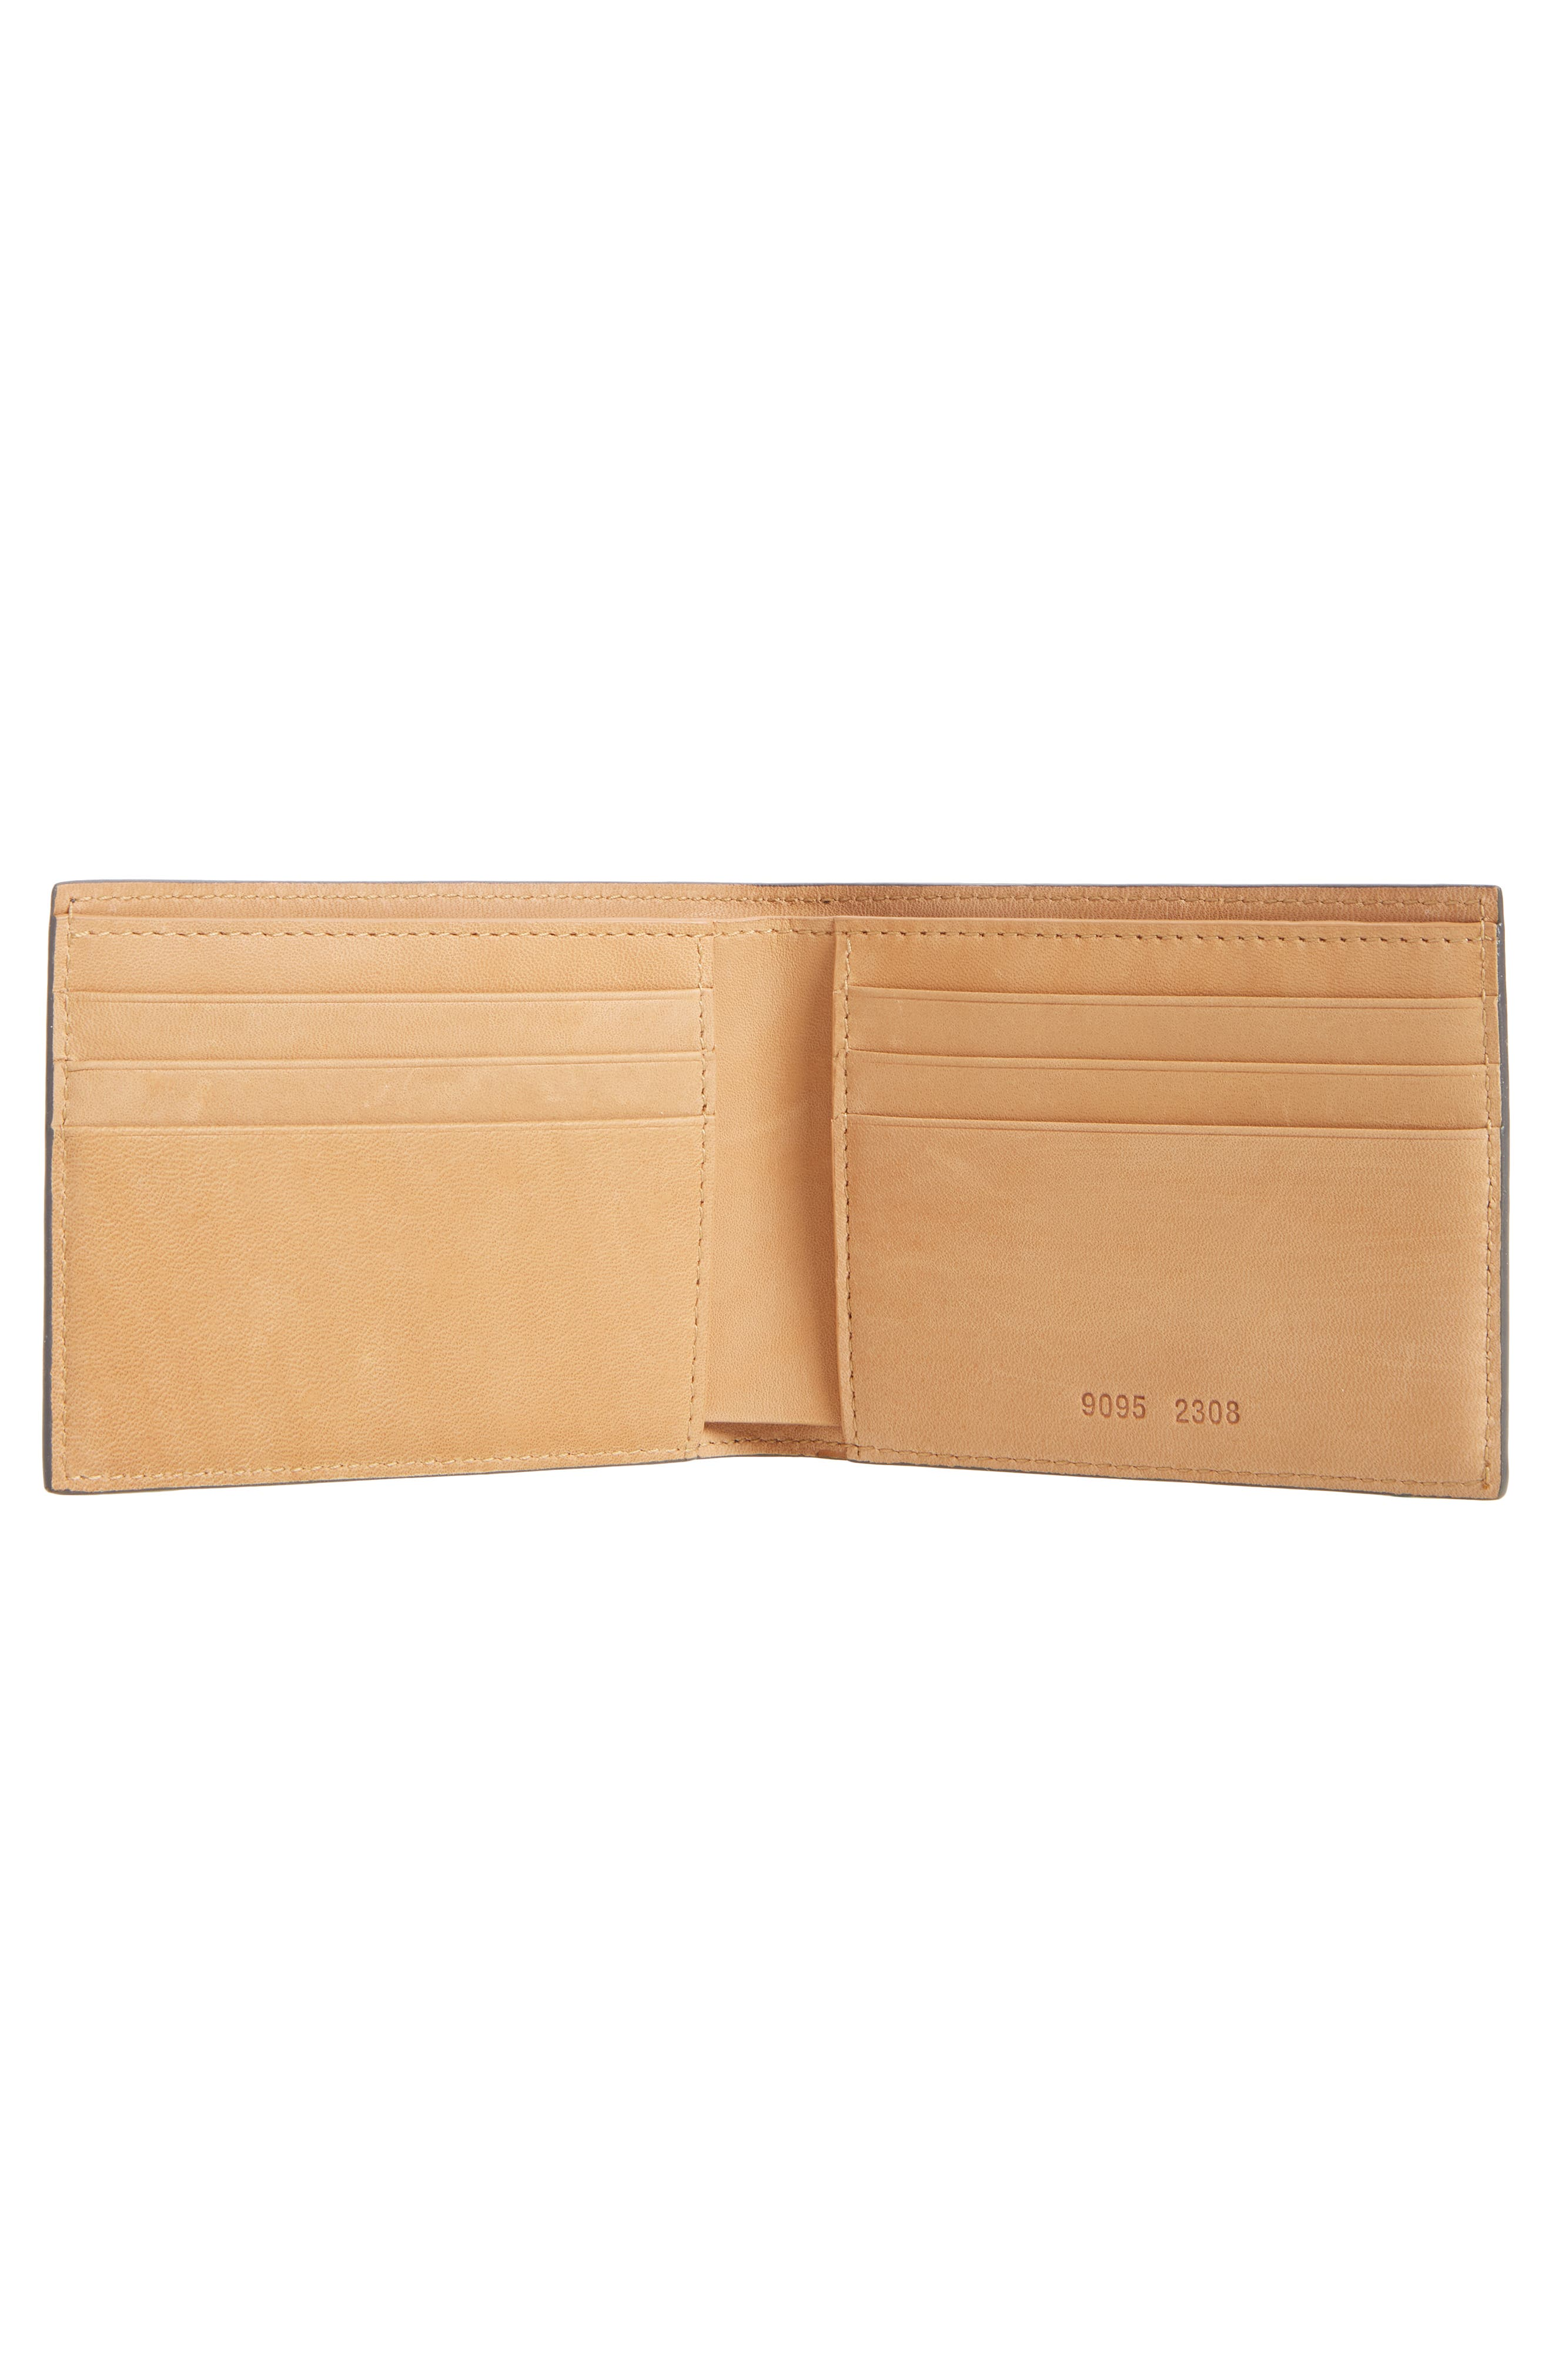 Leather Wallet,                             Alternate thumbnail 2, color,                             BLUE/ GREY